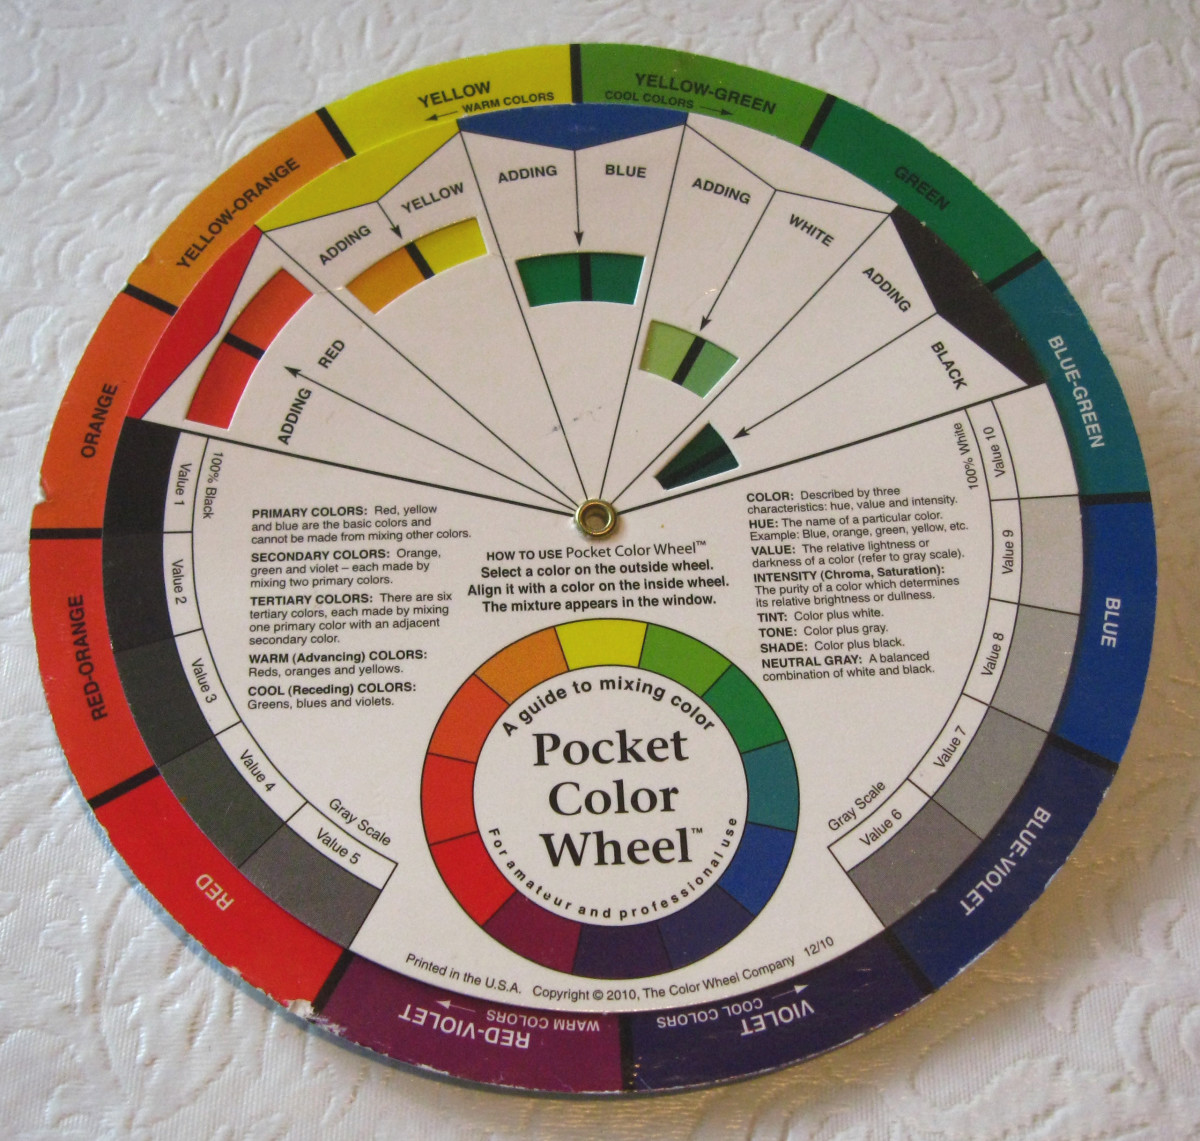 Color Wheel. Warm: Yellow or any color with yellow as a predominant component. Cool: Any blue or color predominantly blue. Red looks like it's in the middle of the temperature scale, and its temperature is relative to the colors next to it.